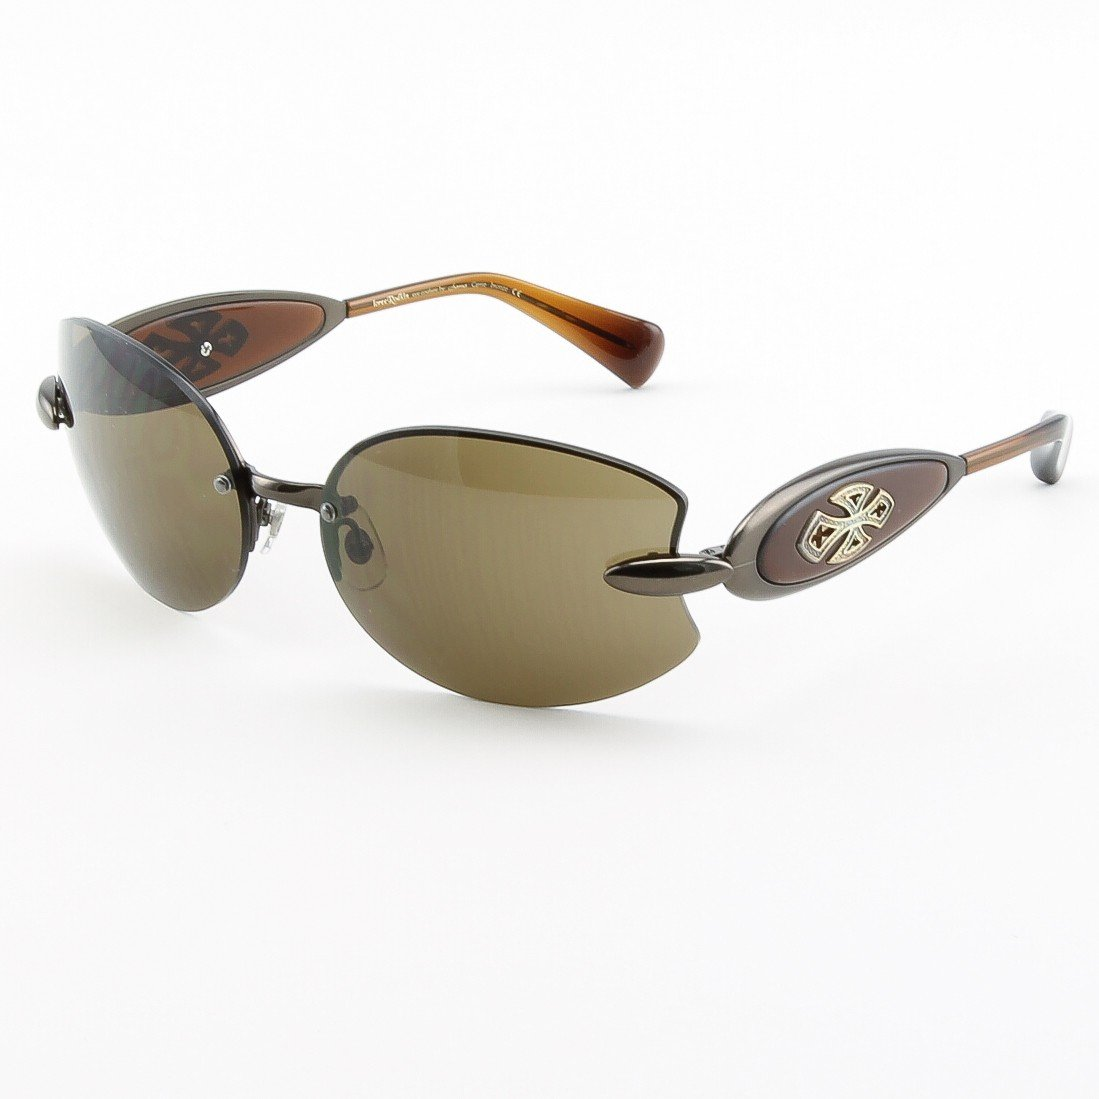 Loree Rodkin Carrie Sunglasses Bronze w/ Brown Lenses, Sterling Silver and Swarovski Crystals